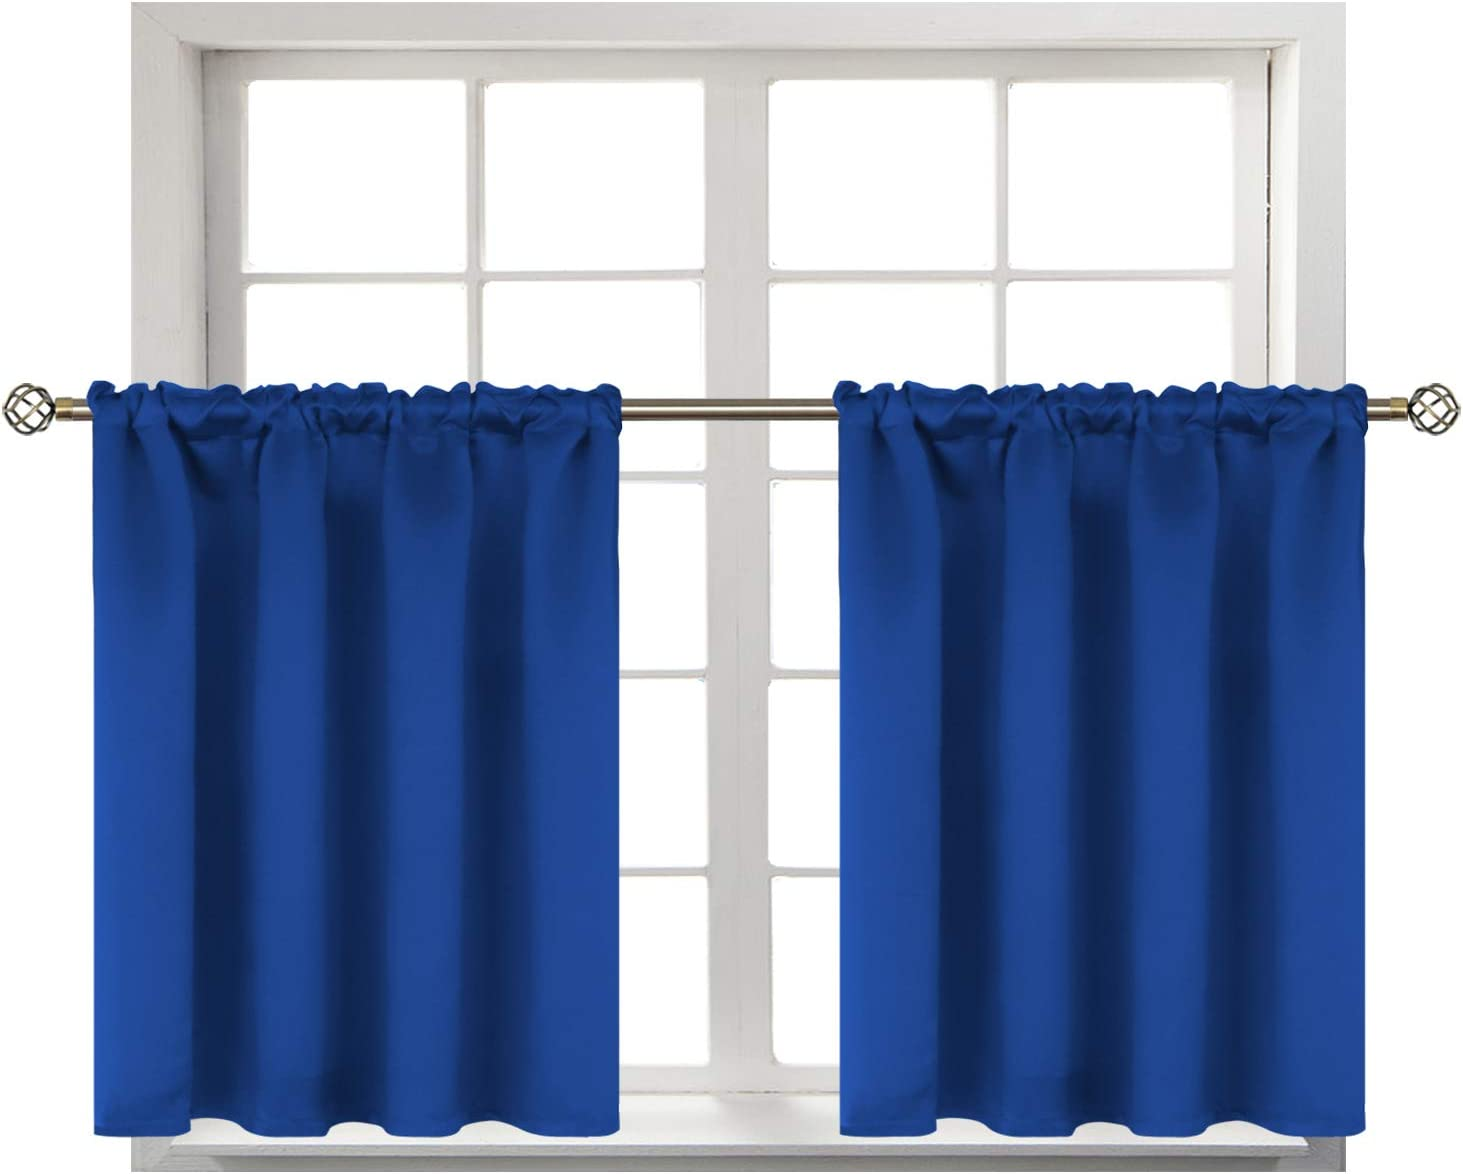 Special sale item BGment Small Window Room Darkening for Thermal Max 84% OFF Curtains Kitchen-